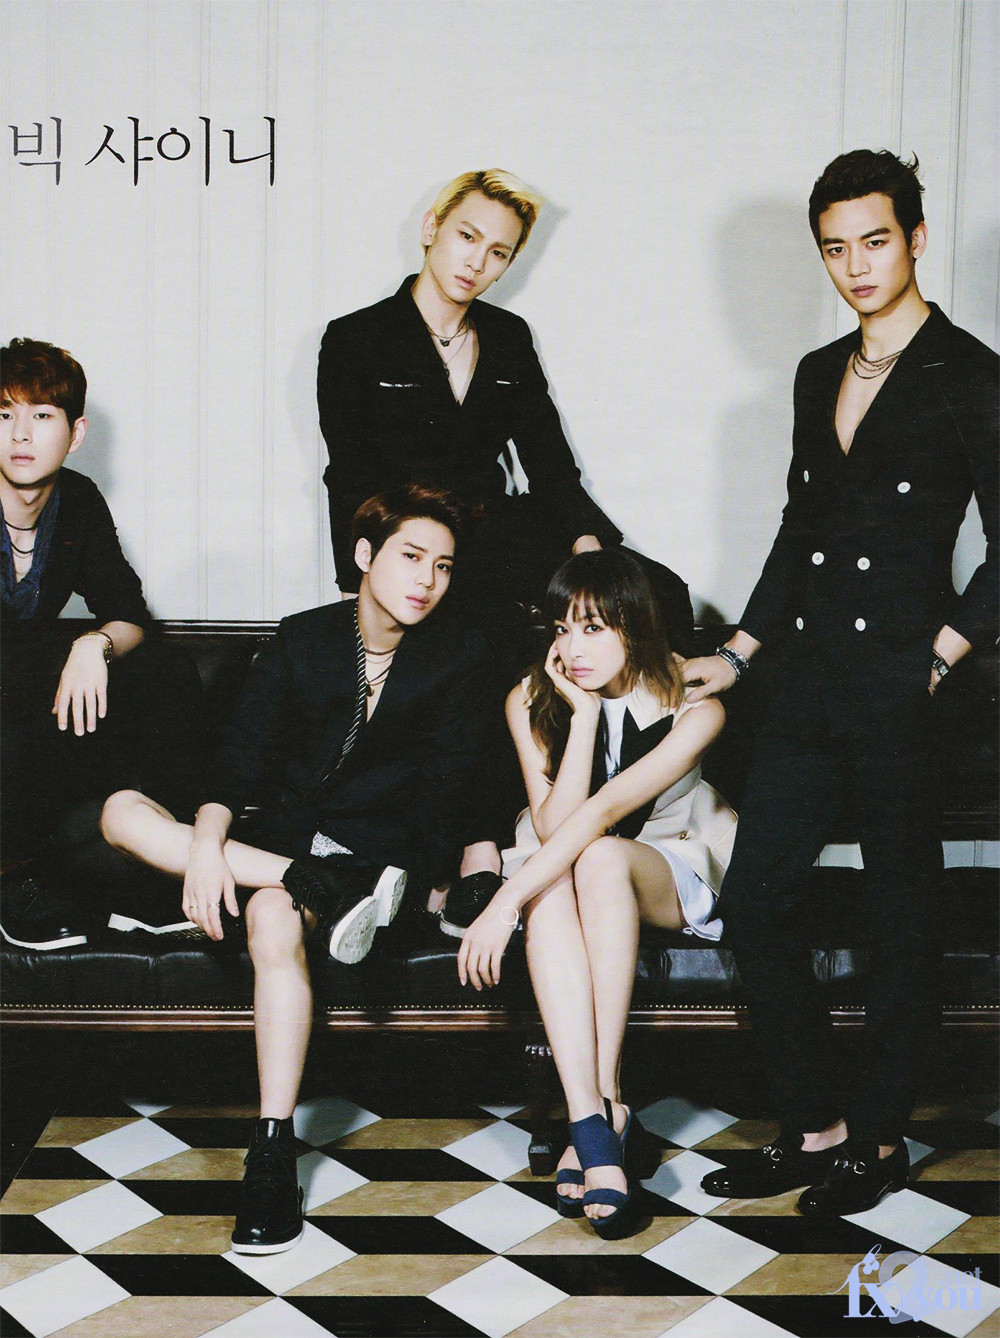 Victoria For High Cut With The Boys Of Shinee My